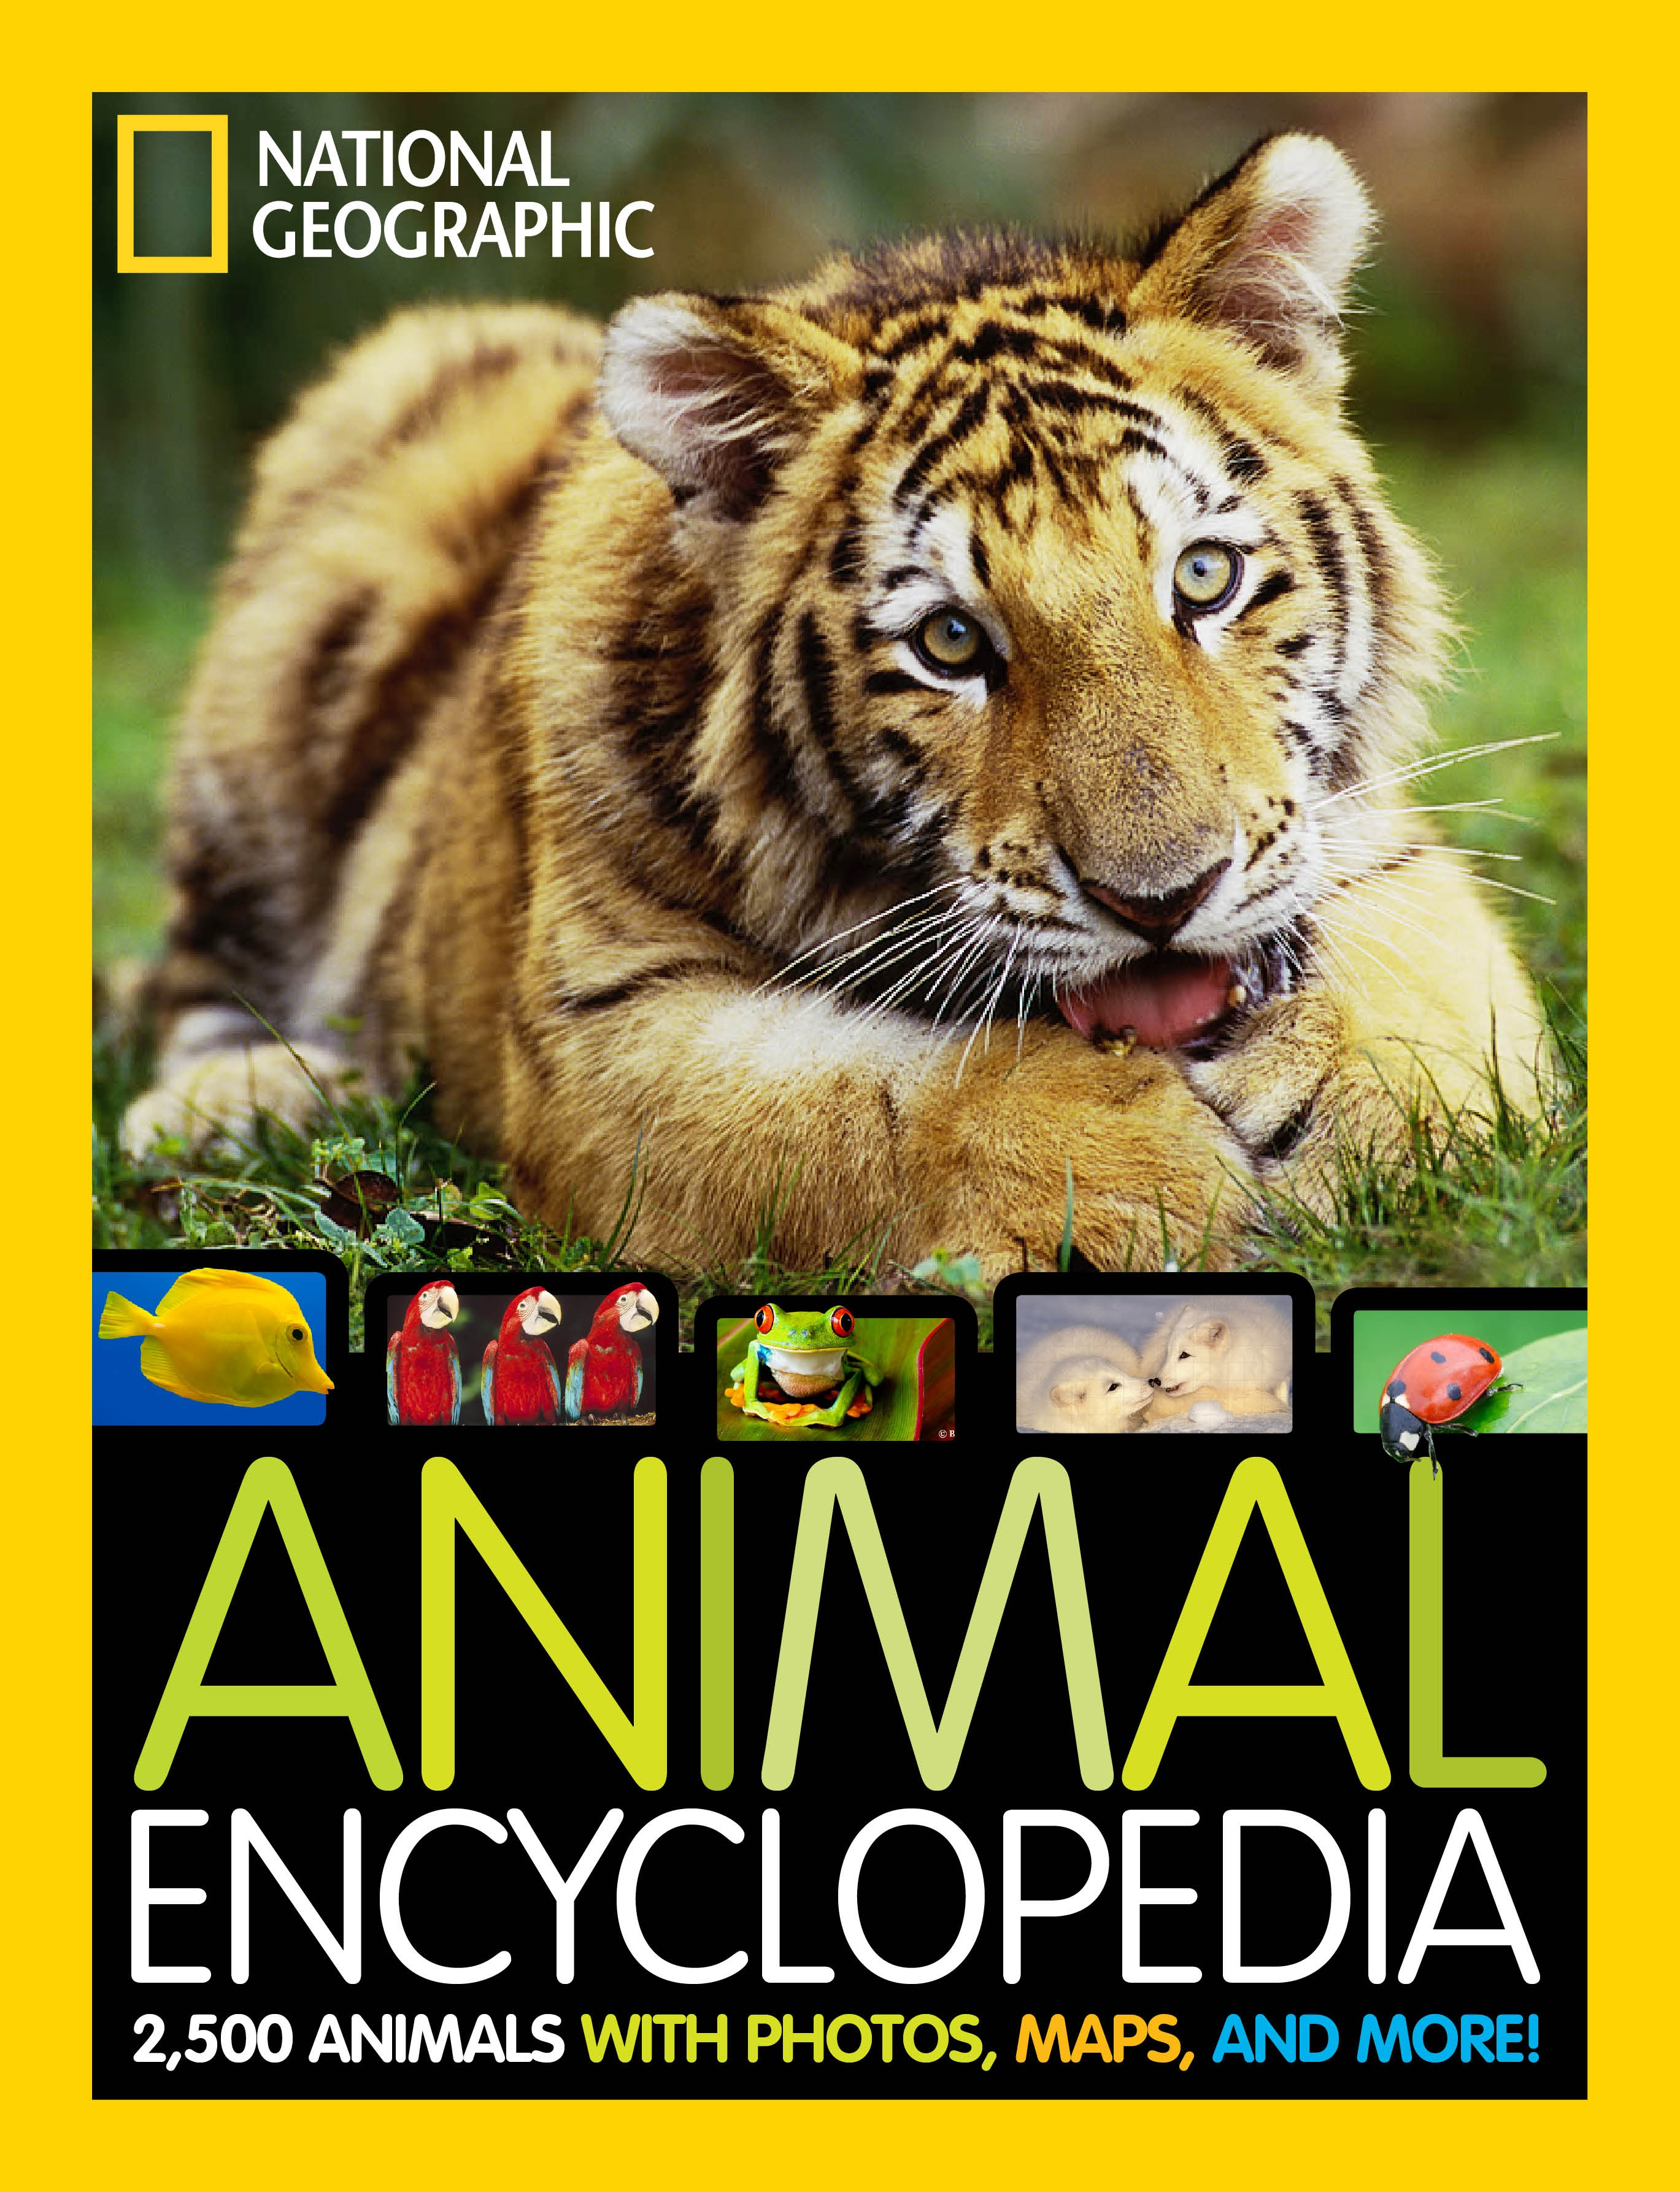 National Geographic Animal Encyclopedia : 2,500 Animals with Photos, Maps, and More! by Natl Geographic Childrens